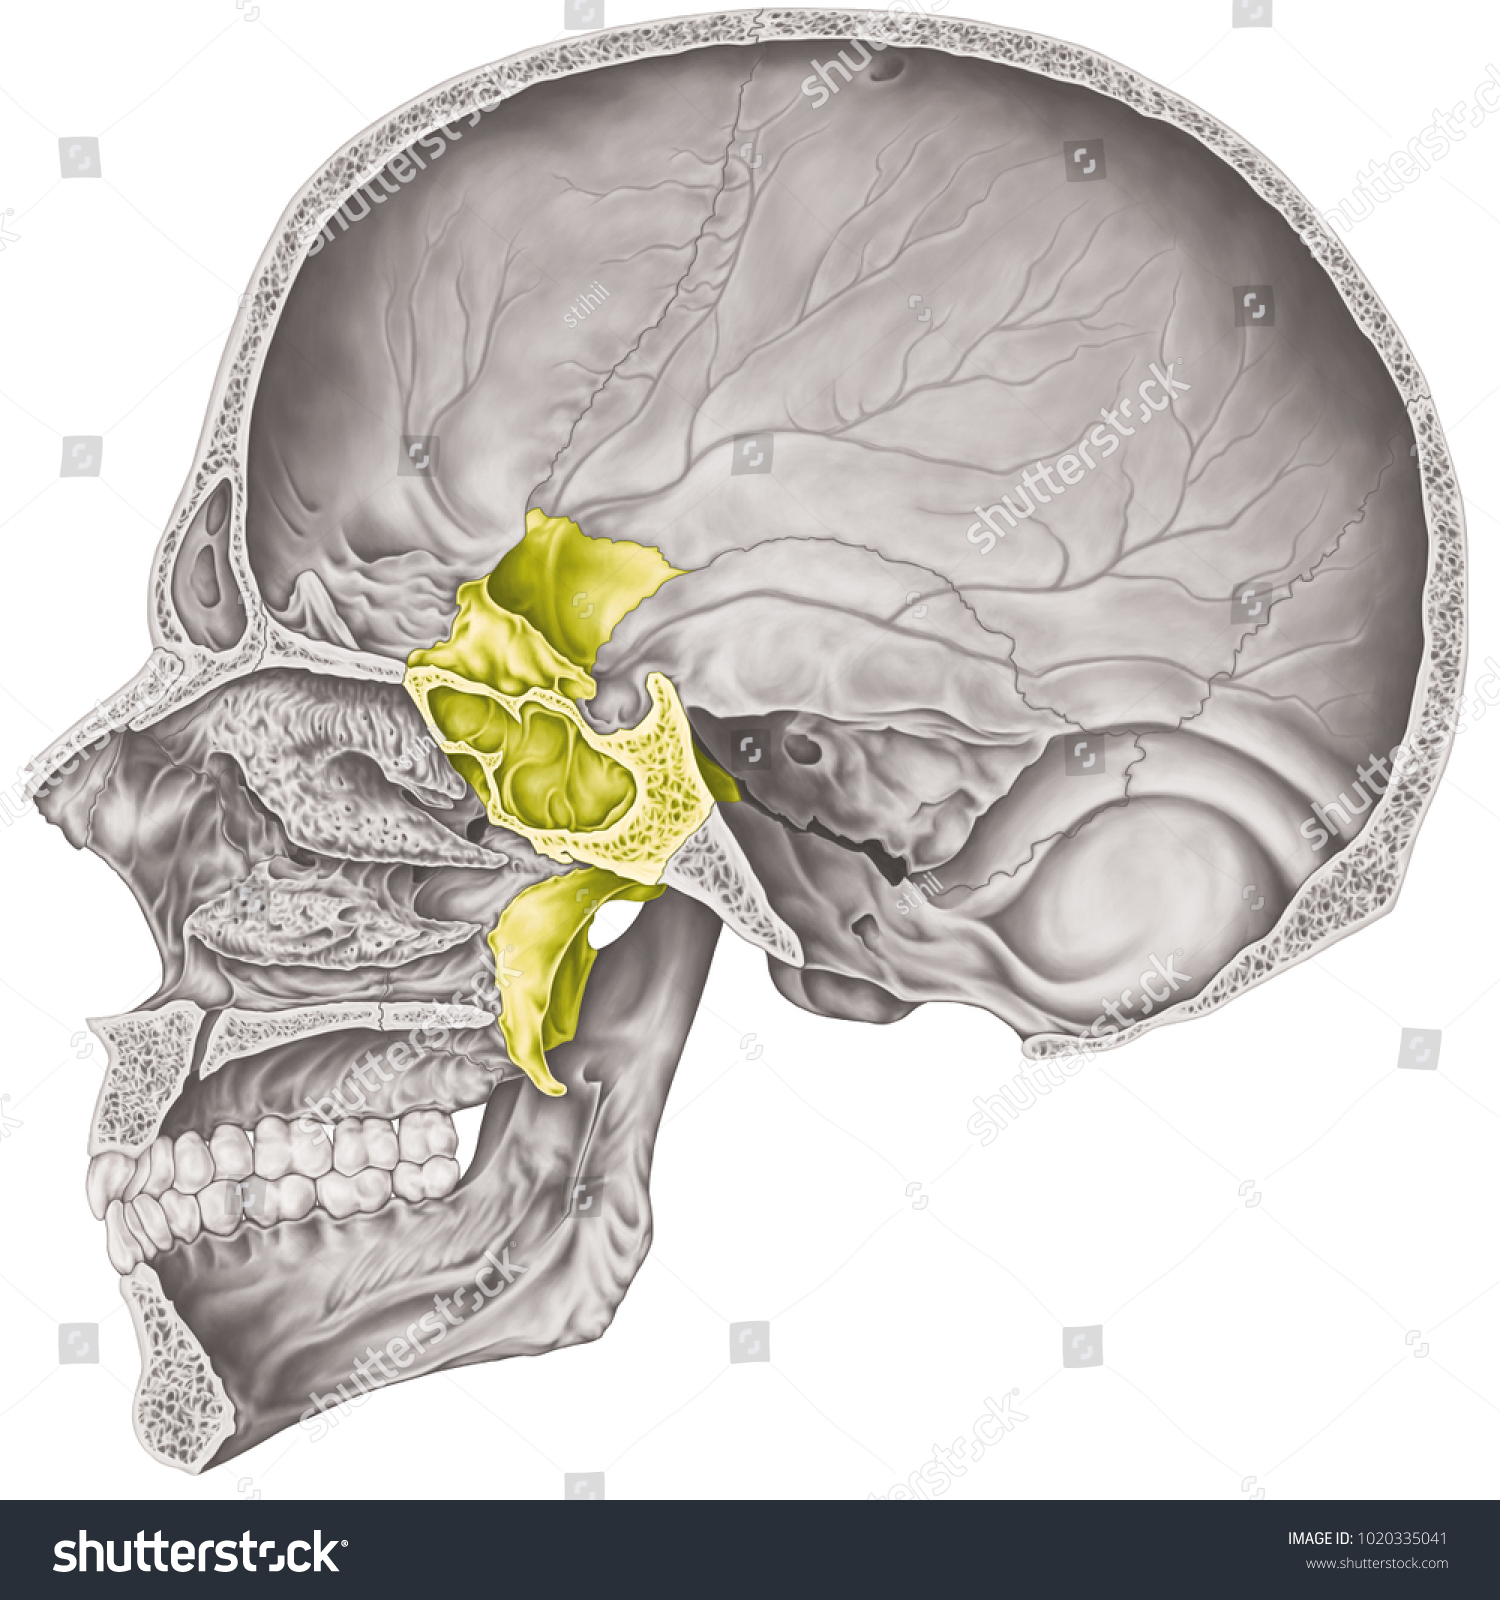 Cranial Cavity Sphenoid Bone Cranium Bones Stock Illustration ...